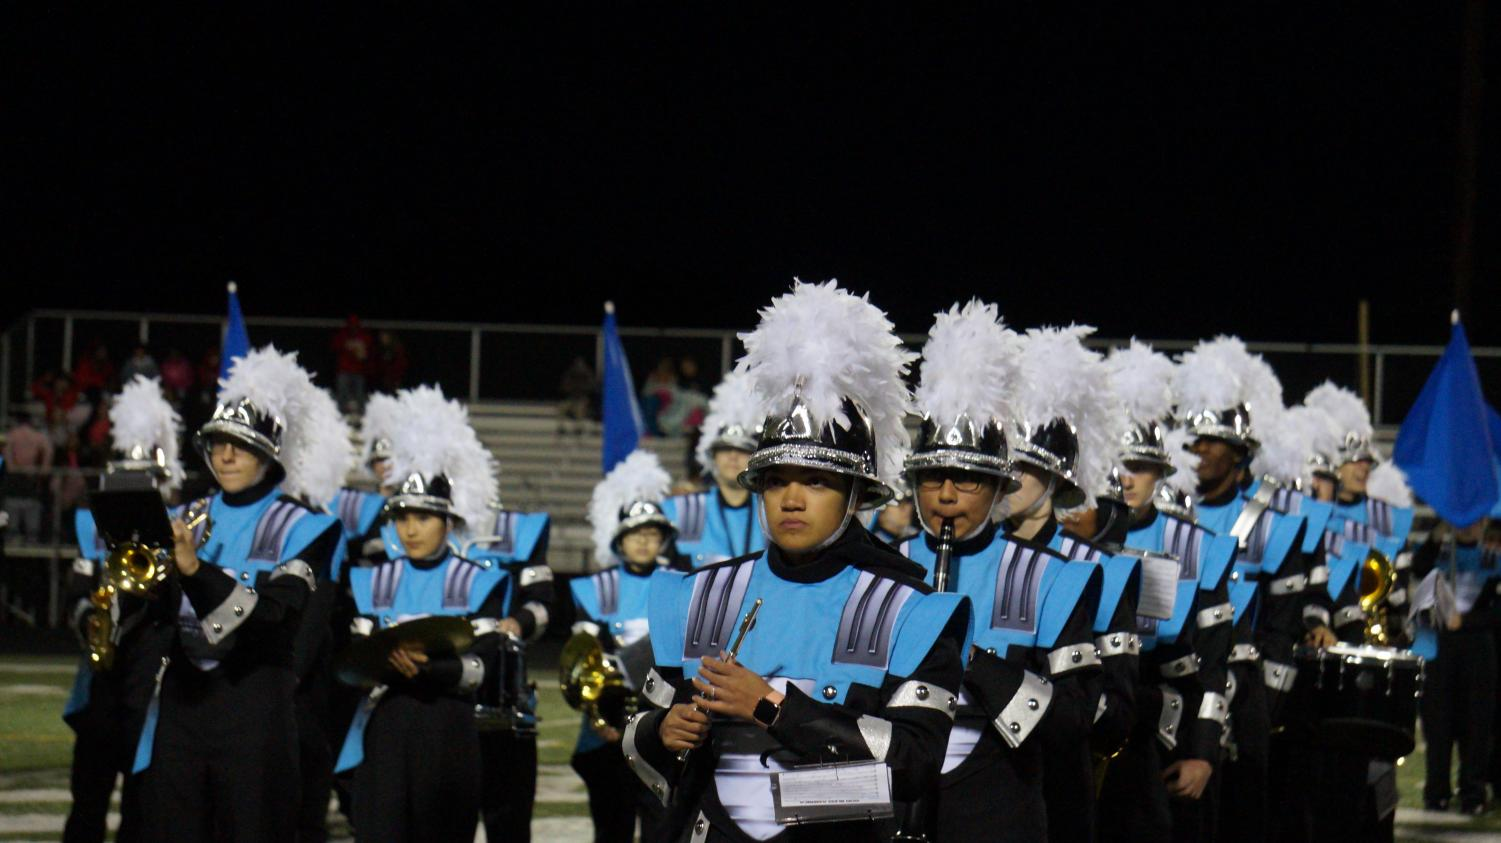 Go Vikings! Marching Band ready themselves to play at the Homecoming game.